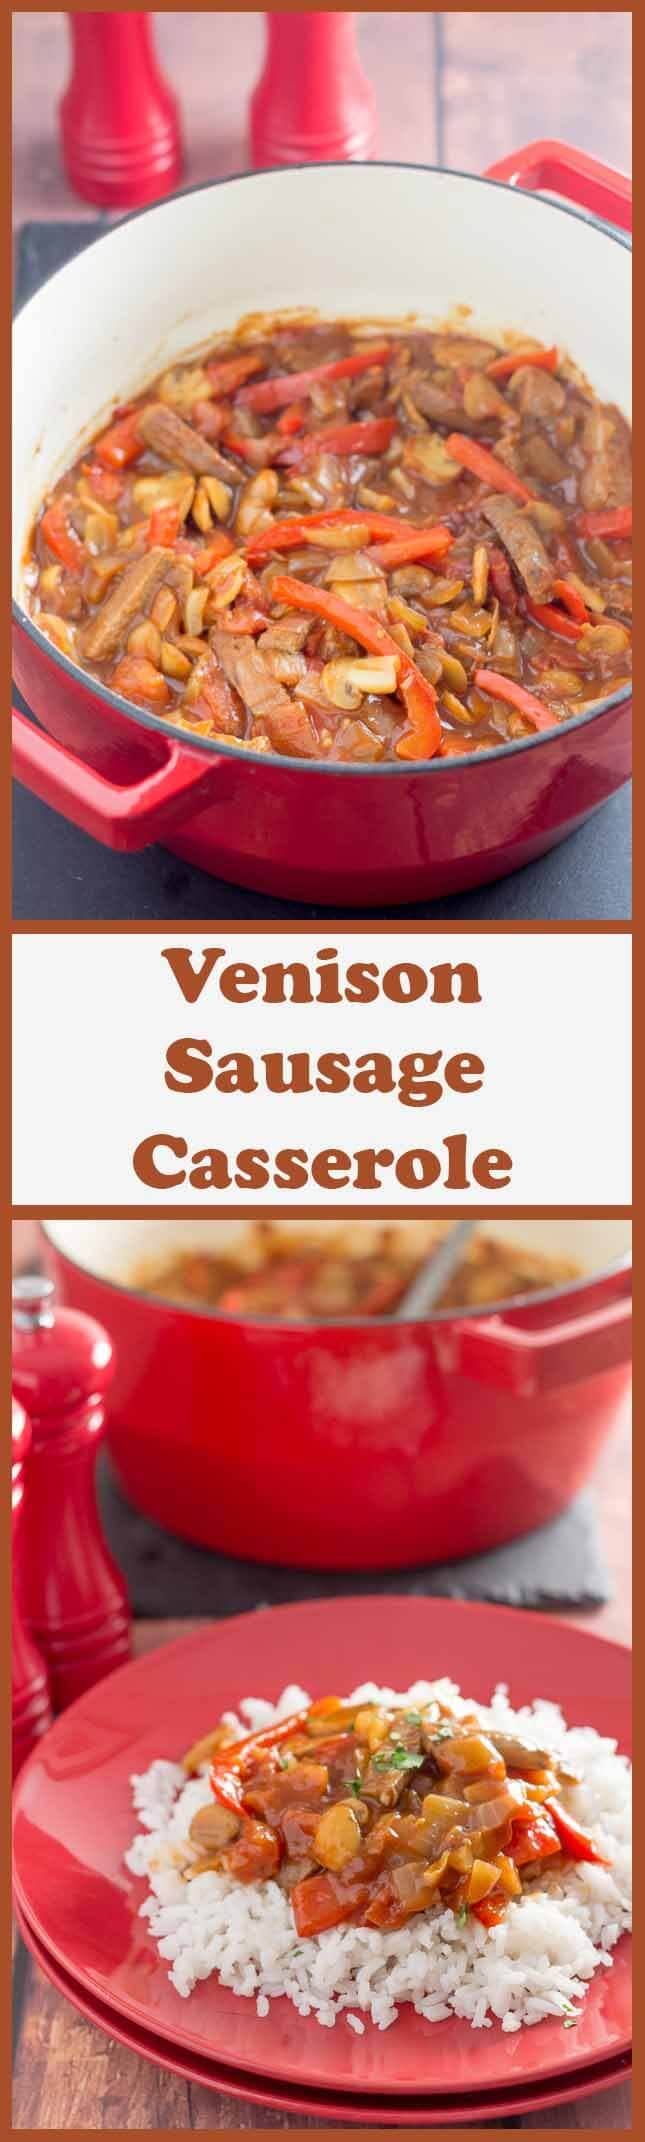 Low fat venison sausage casserole is an extremely tasty and easy one pot budget family meal. Made in just one hour, you'll want to add this recipe to your quick healthy meals dinner list!